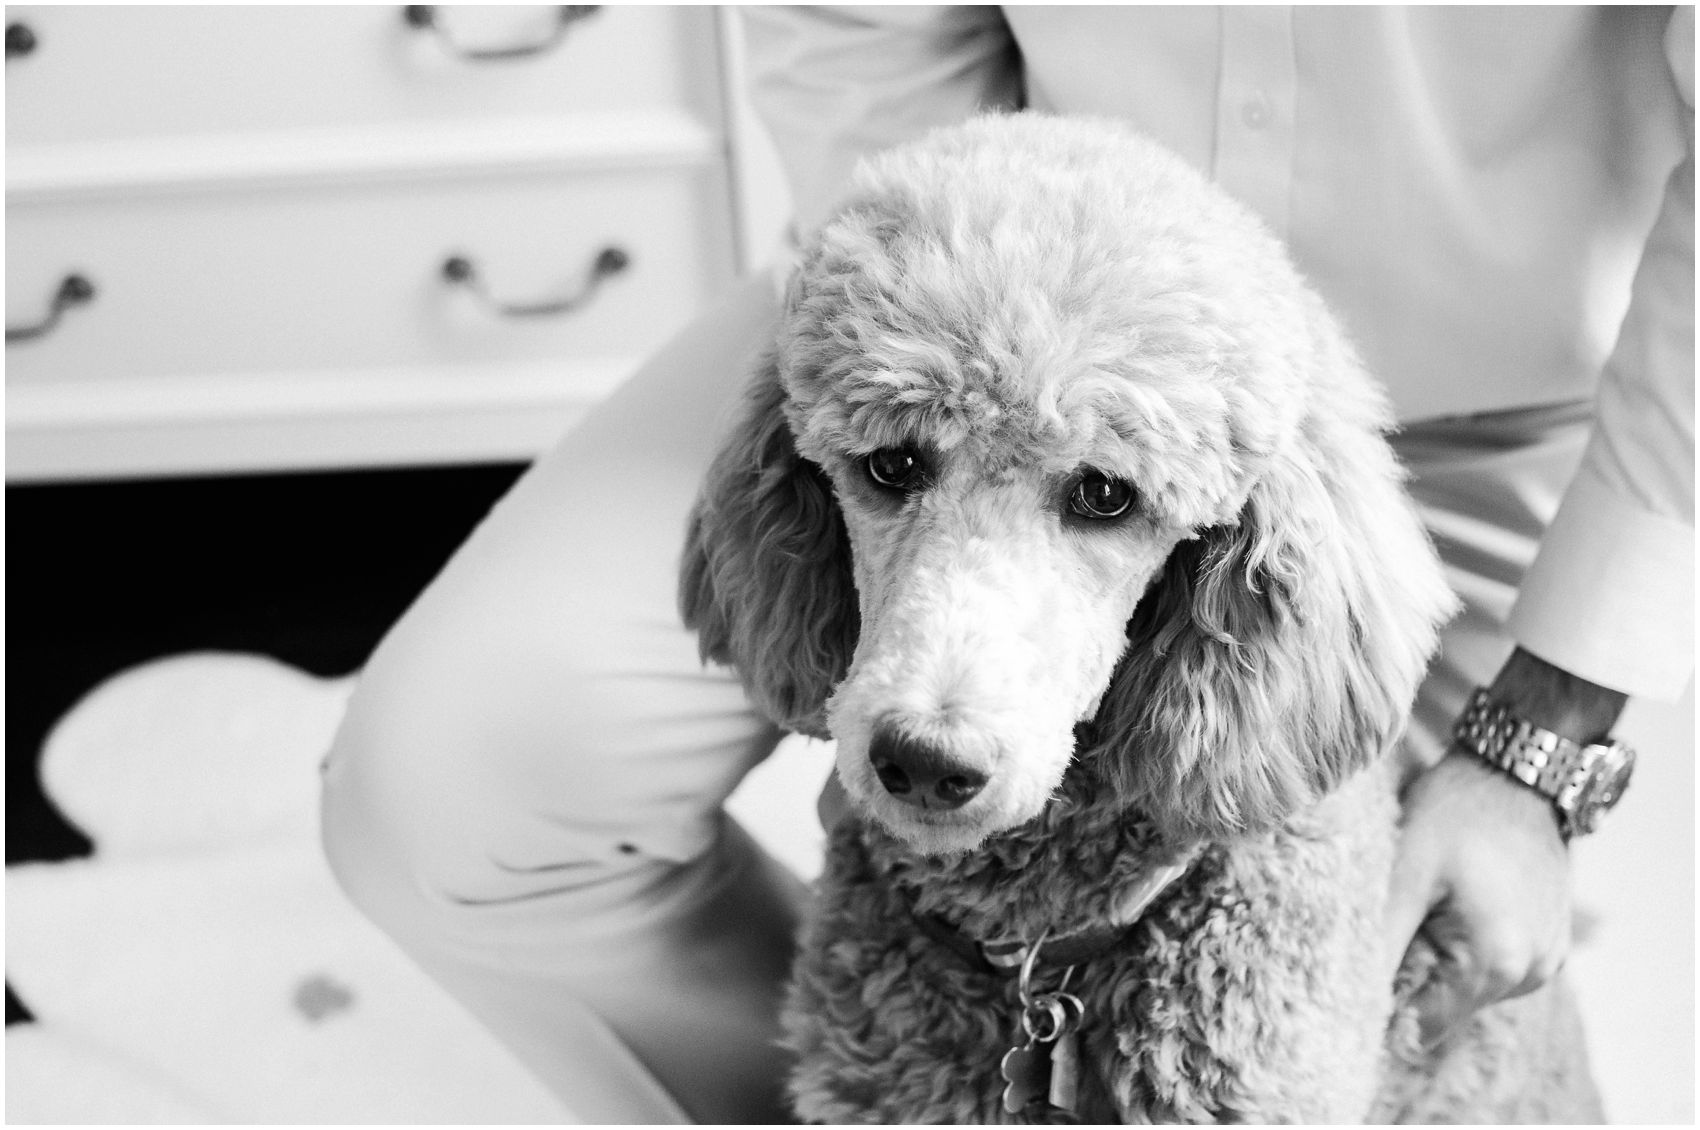 family dog poodle is looking happy and alert in family photos